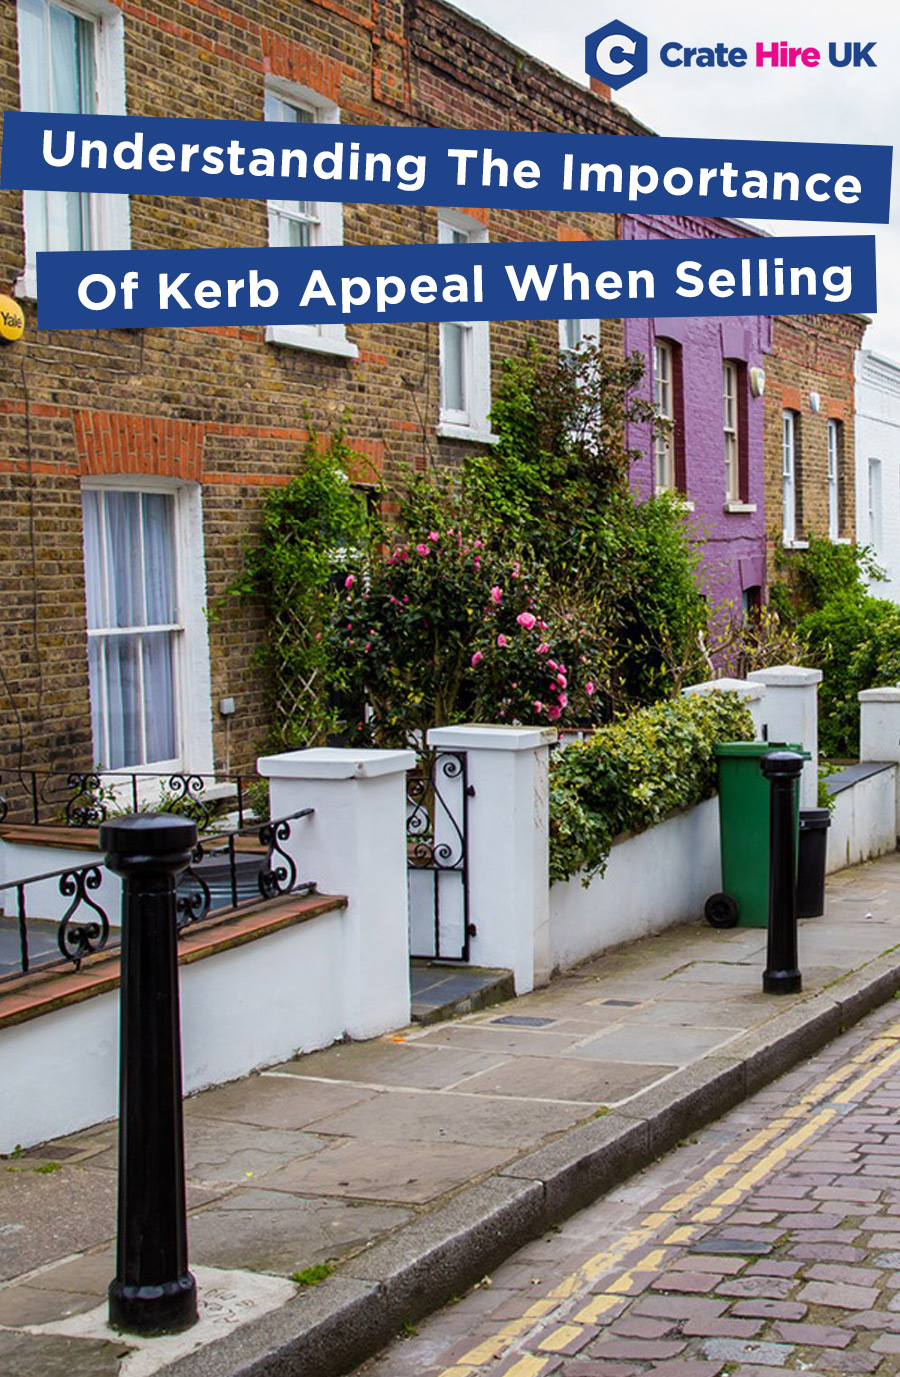 The Importance of Kerb Appeal